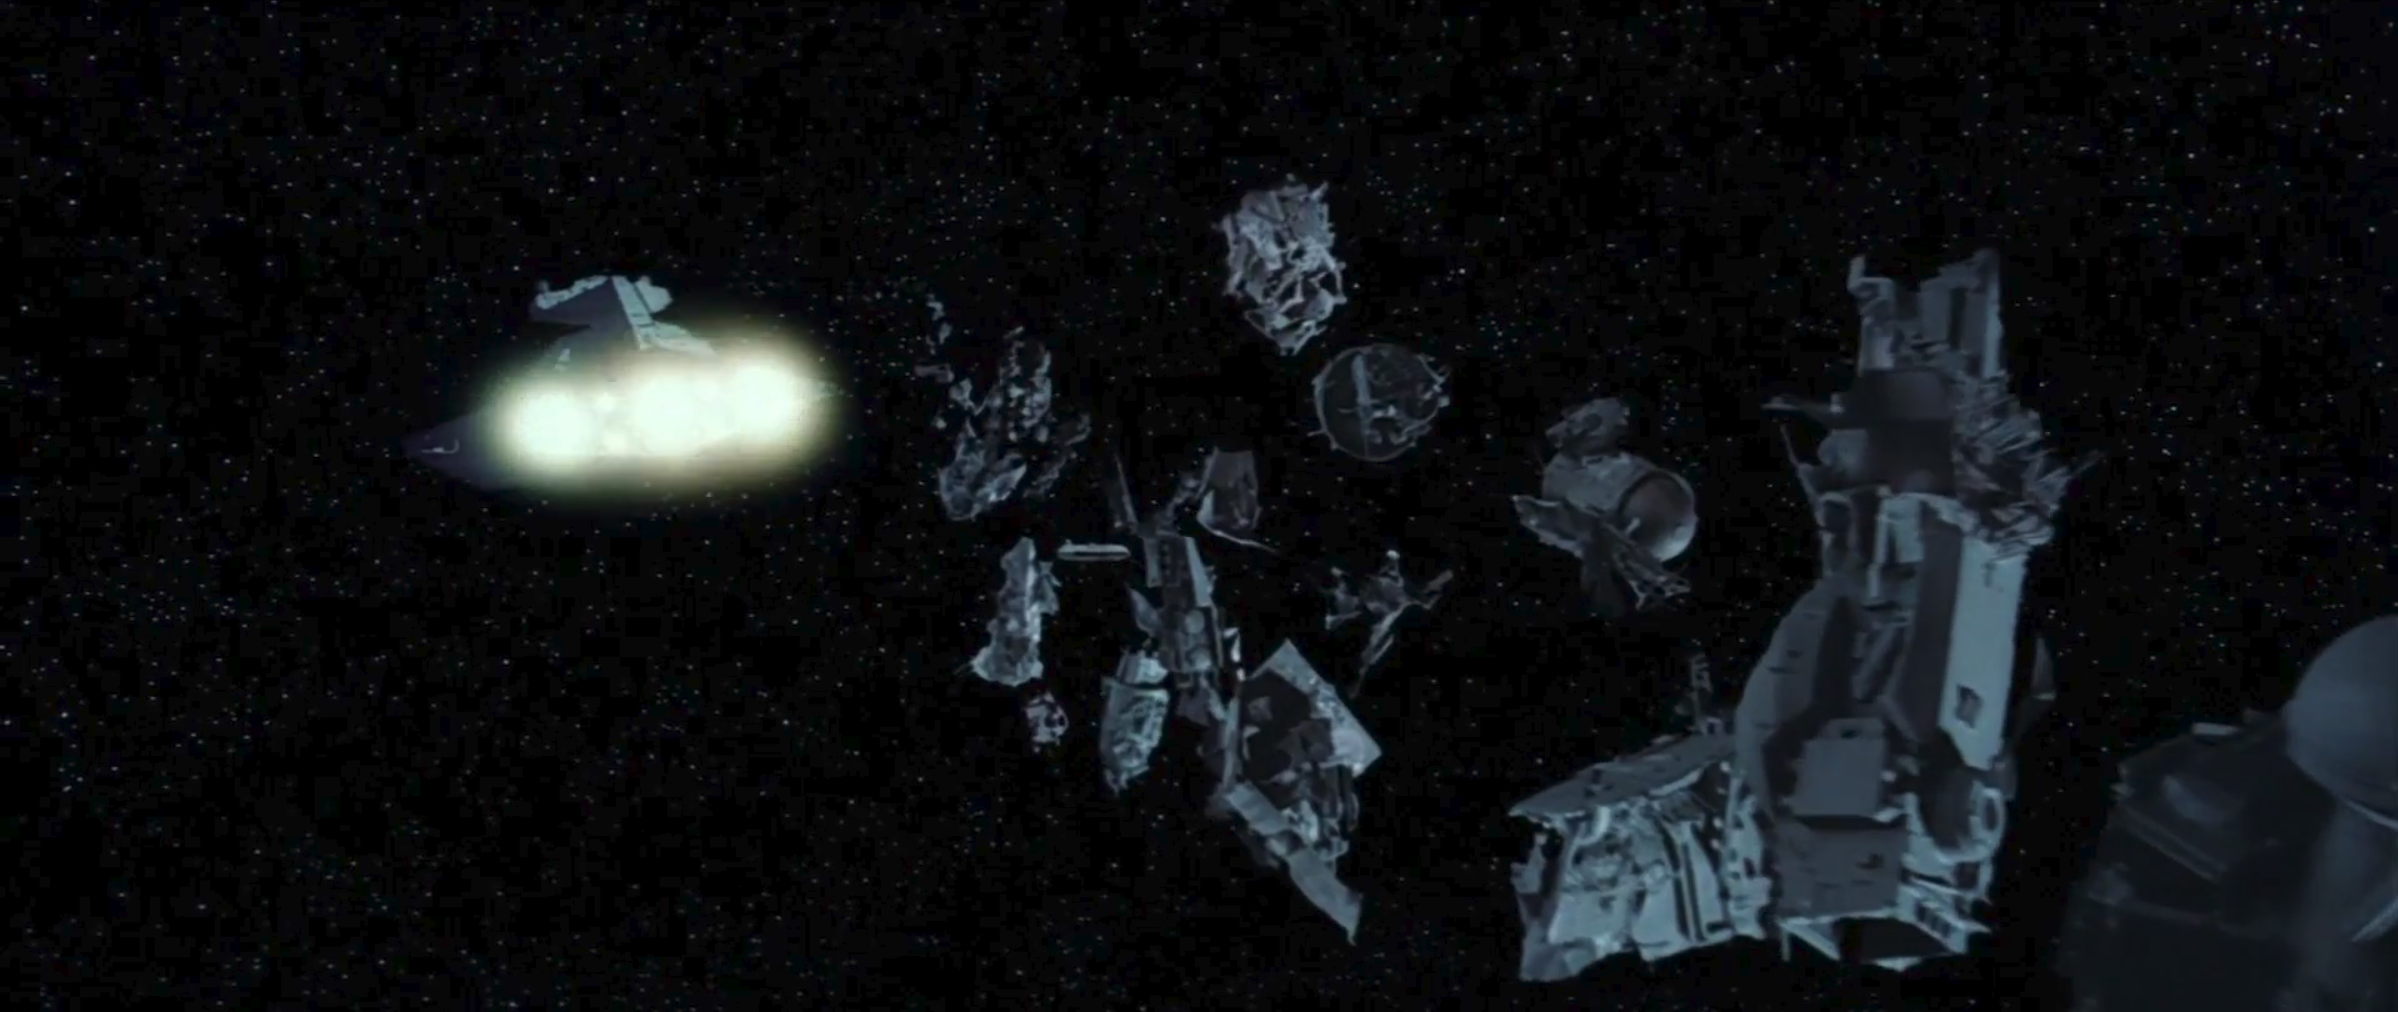 Star Destroyer dumping trash before jump to hyperspeed